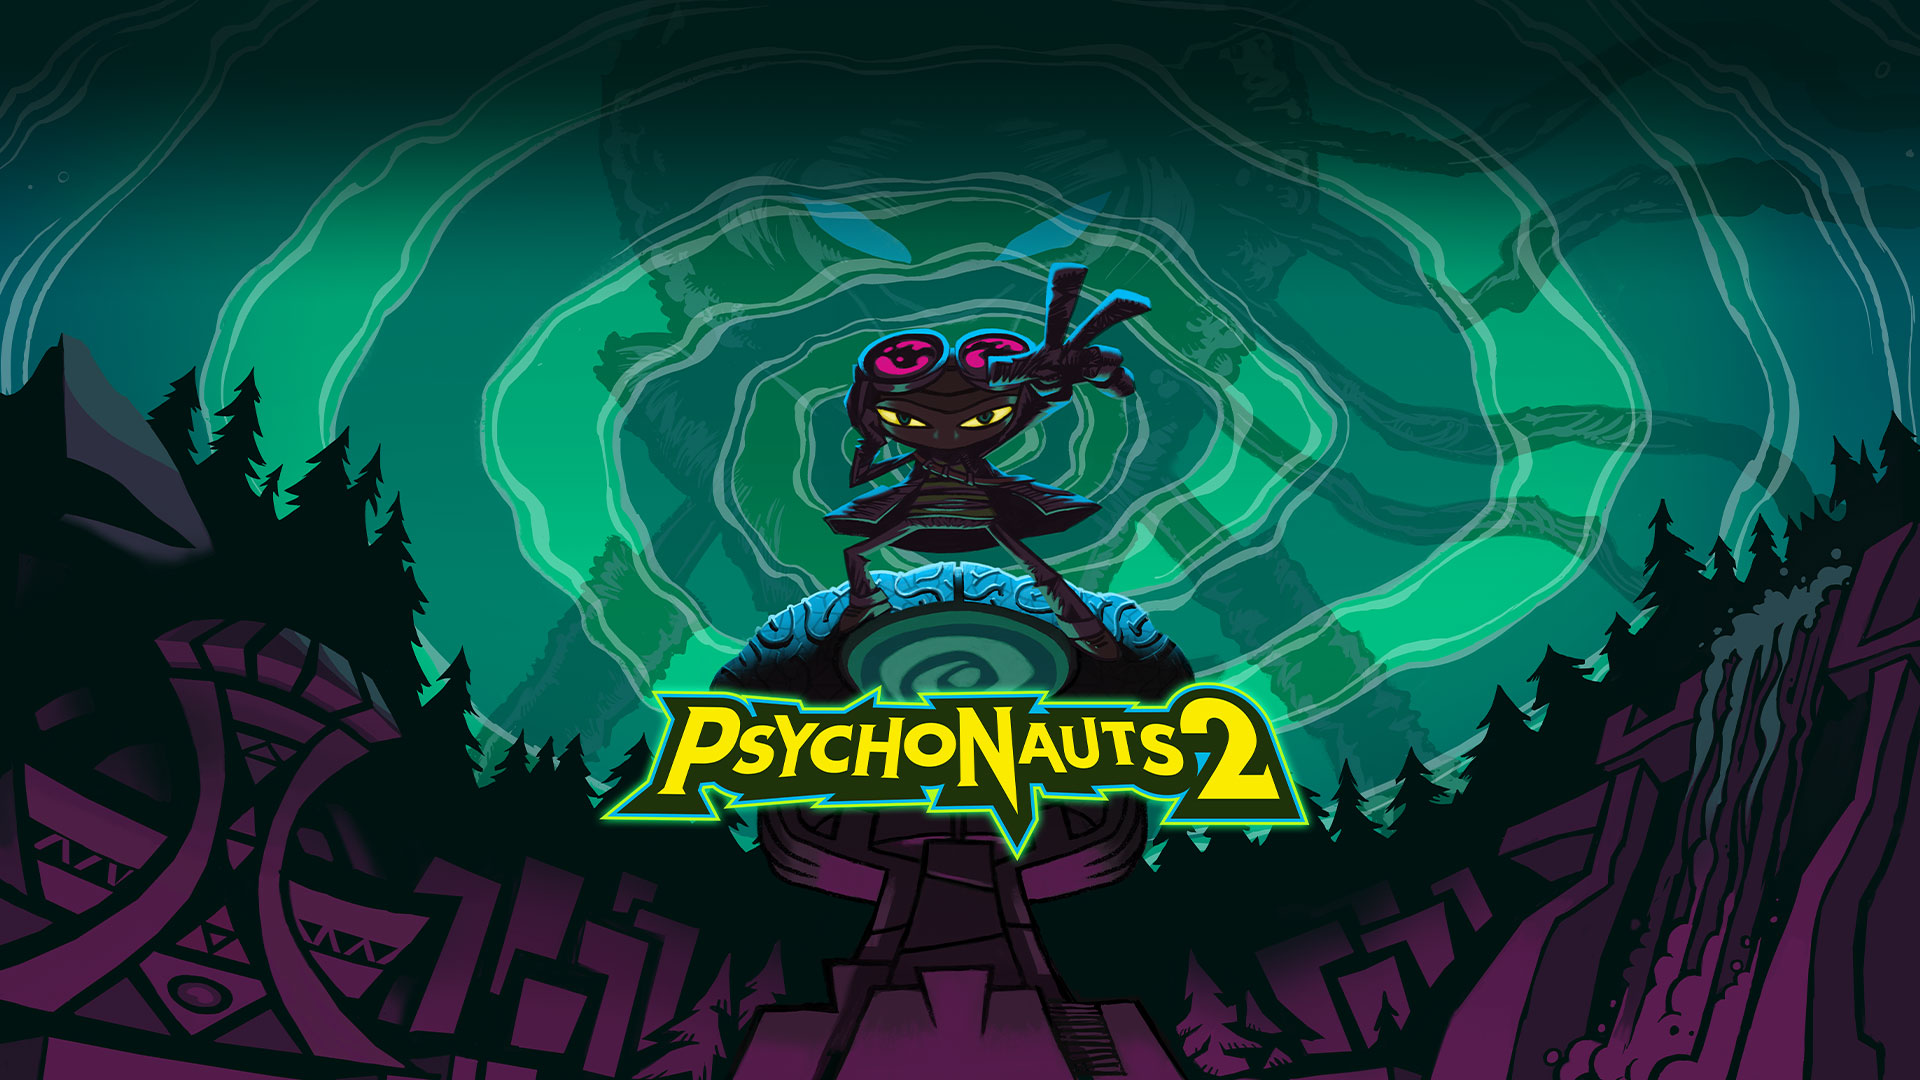 Psychonauts 2 logo, character standing with their hand out with a dark forest and a large character stands behind them with green spiral sky